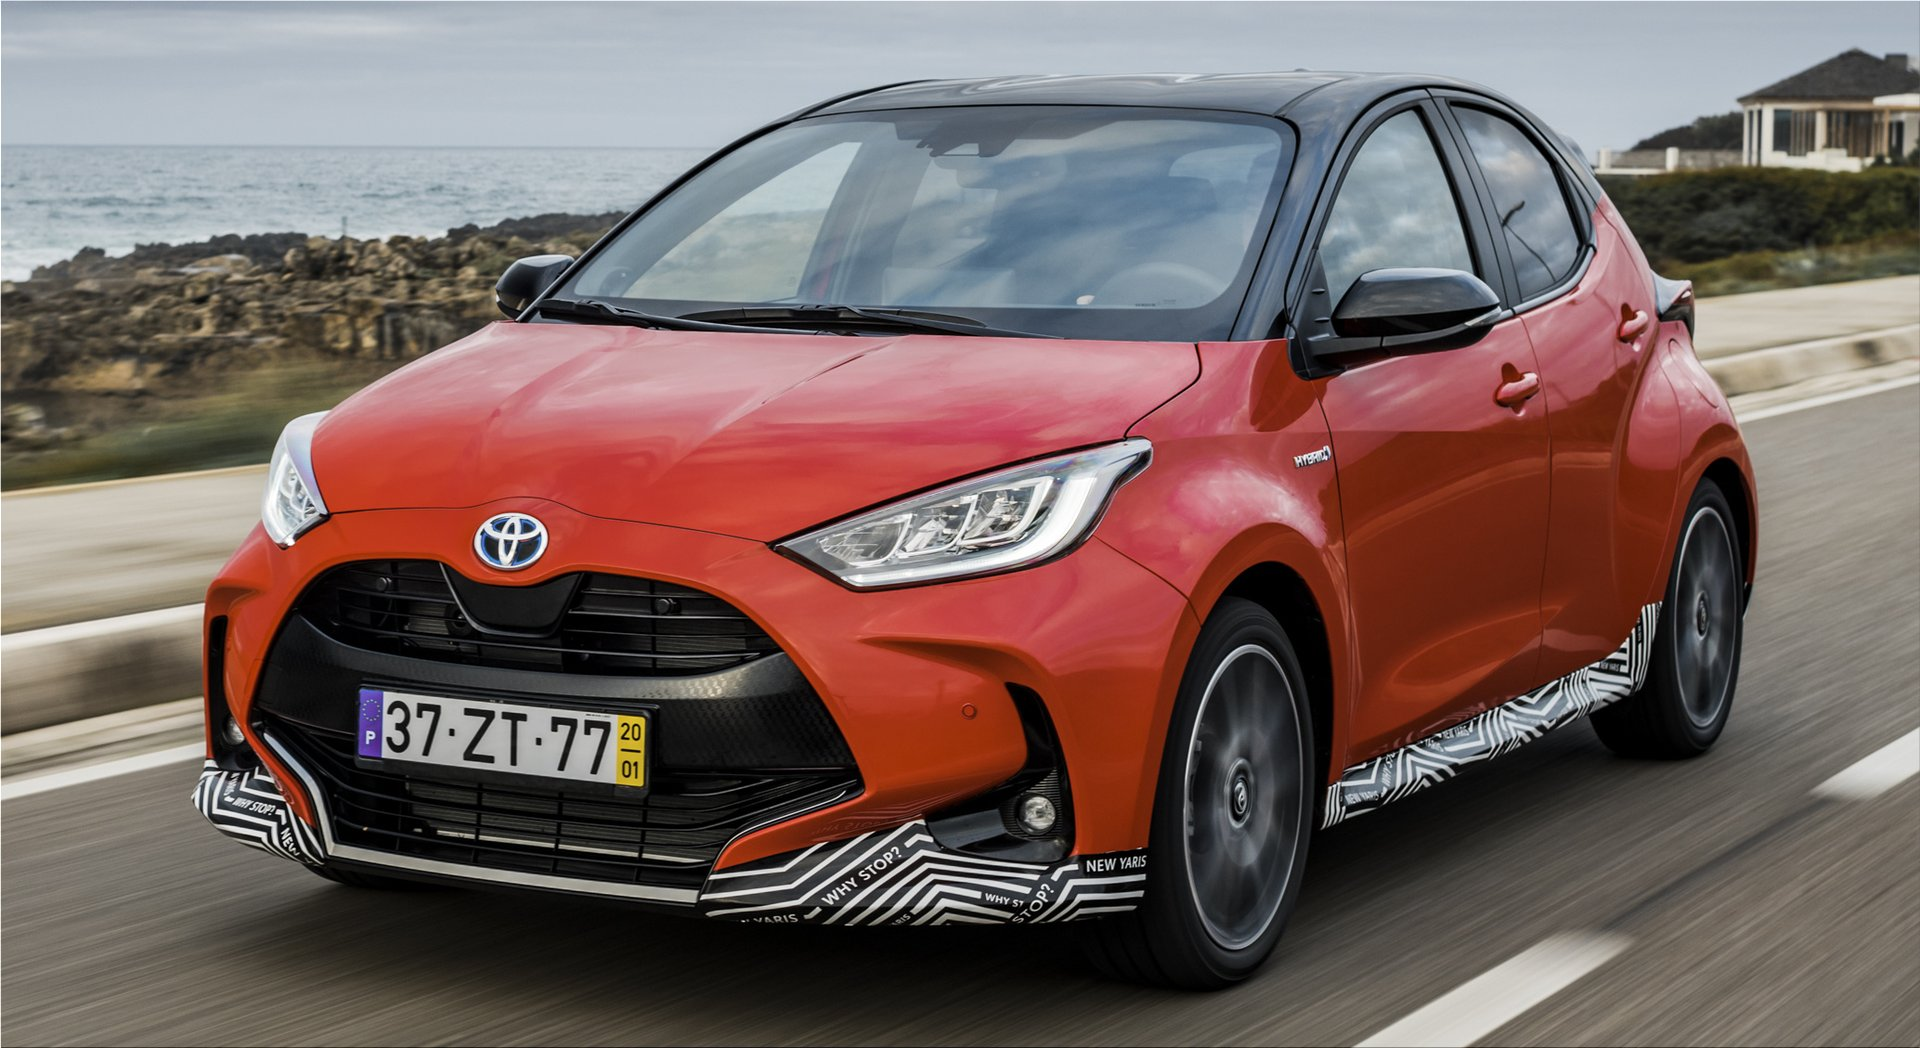 The new Toyota Yaris won the car industry's prestigious award Car of the Year 2021 in Euro...